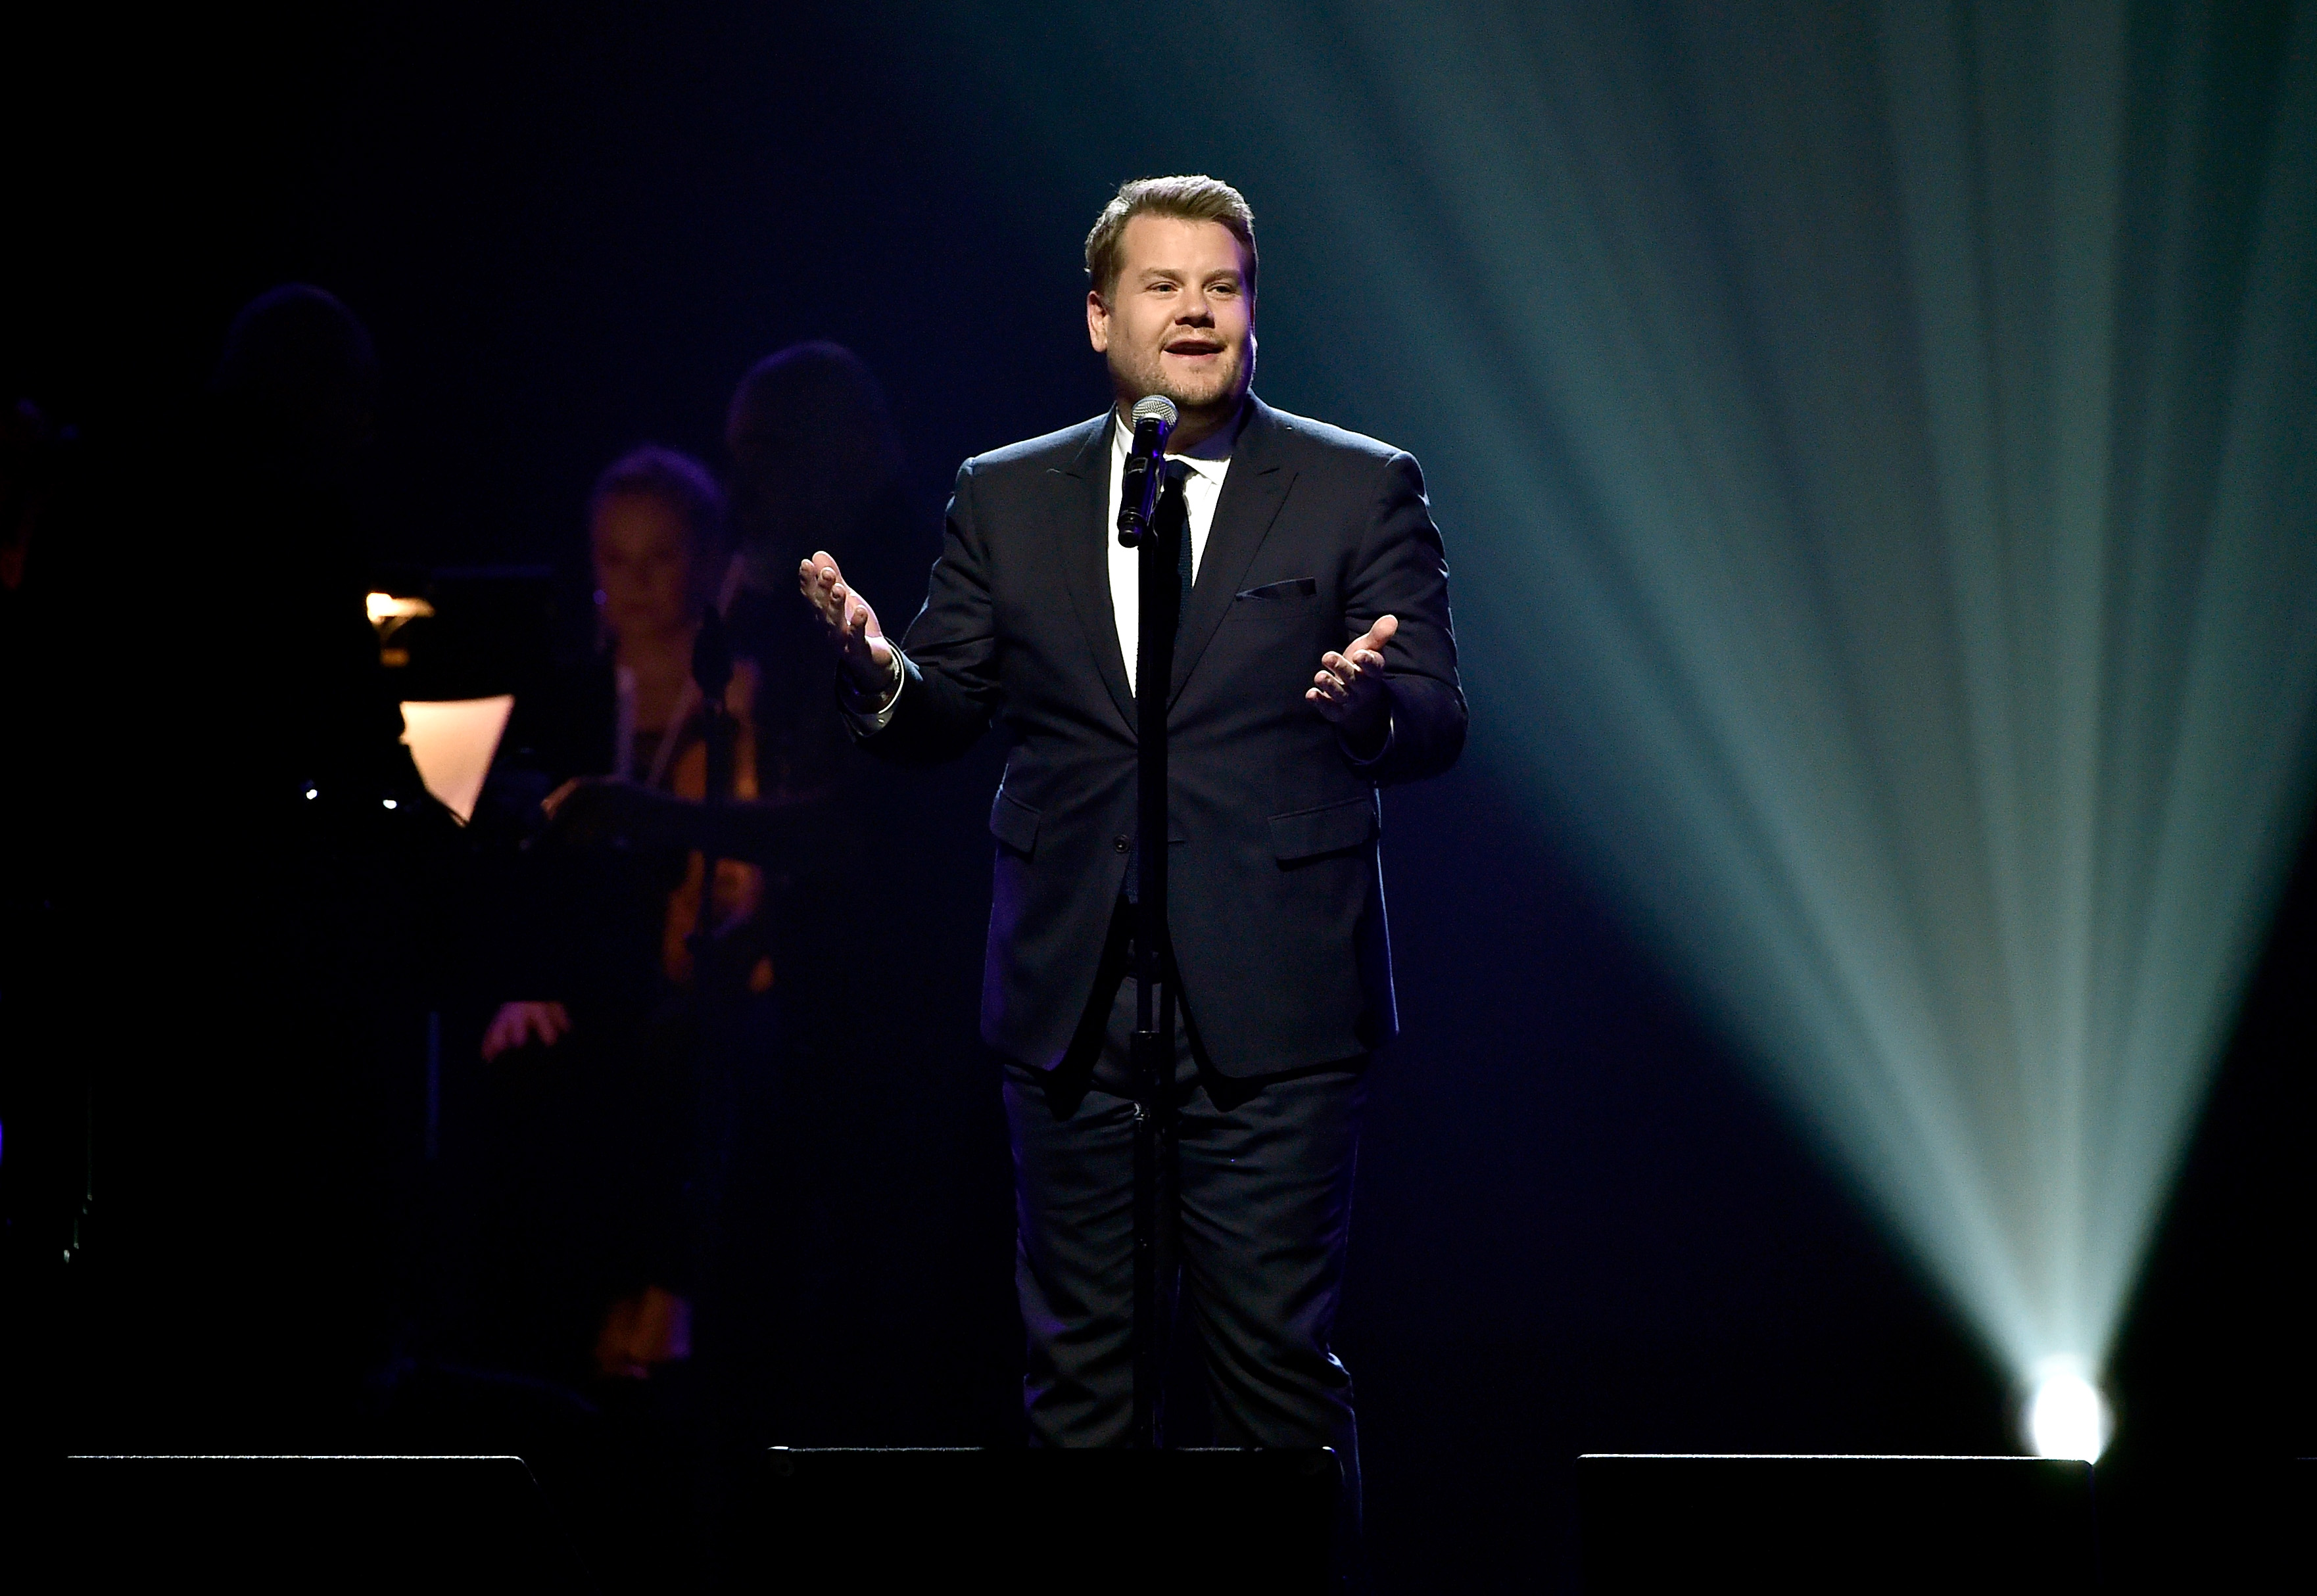 Actor James Corden performs at the 20th Annual Power Of Love Gala at the MGM Grand Garden Arena on May 21, 2016 in Las Vegas City.